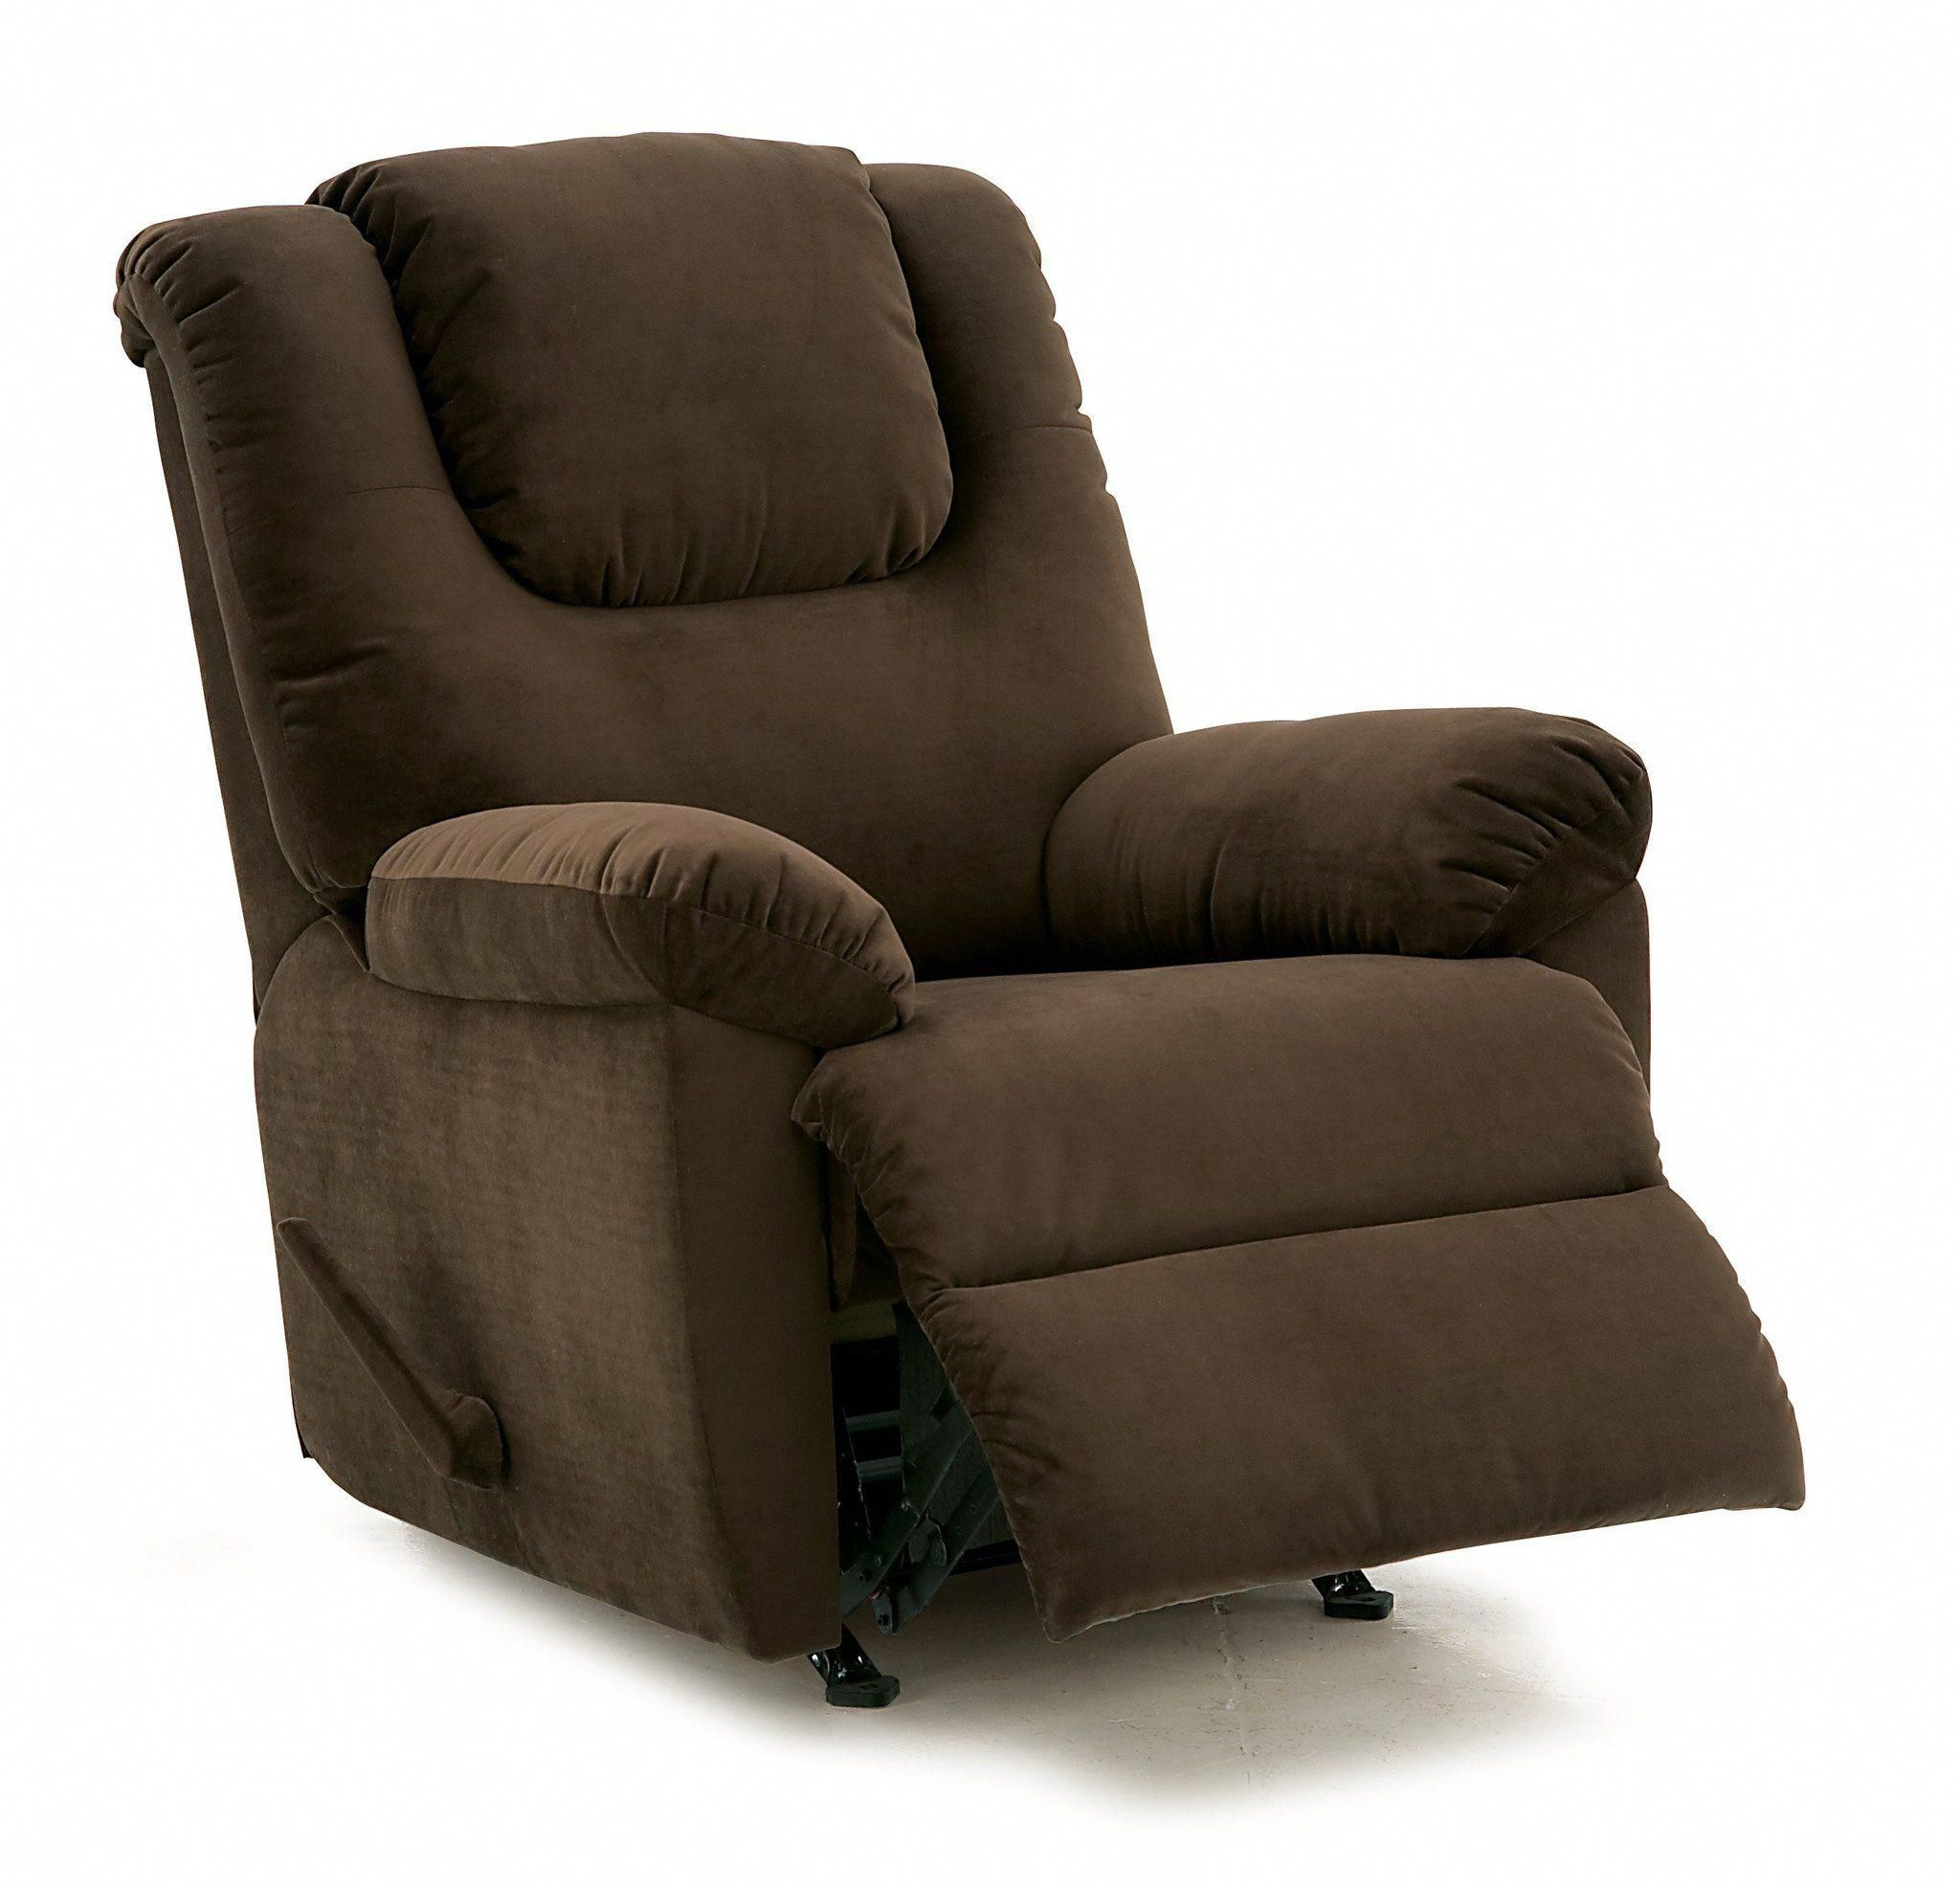 43 Reference Of Small Recliner Chair In 2020 Small Recliners Small Recliner Chairs Recliner Chair